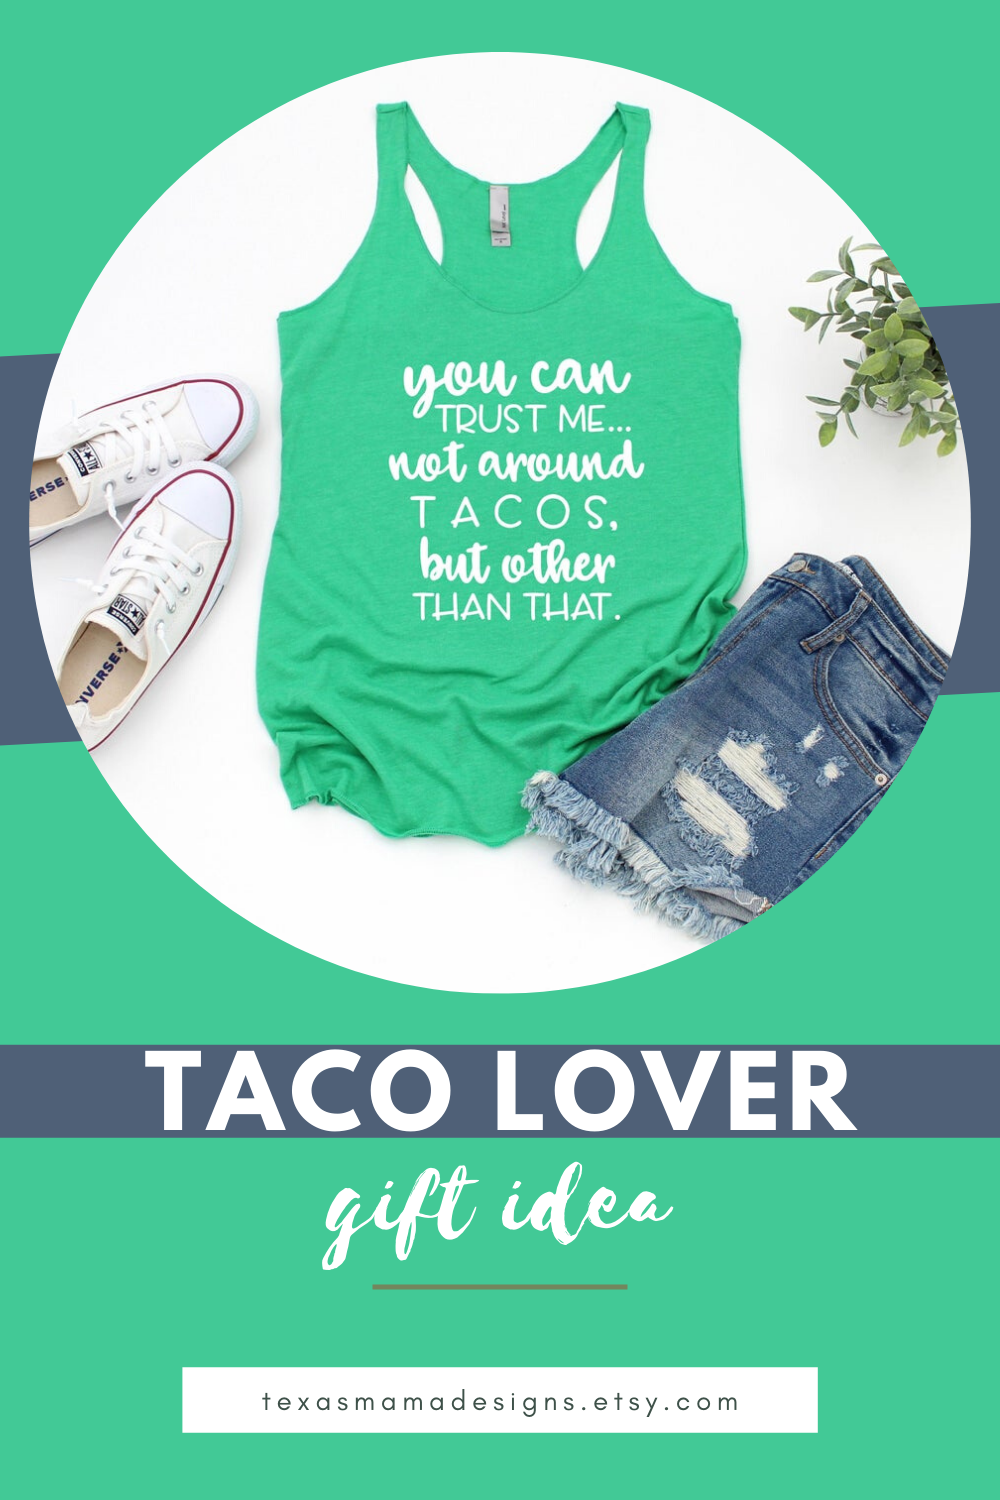 tacolover